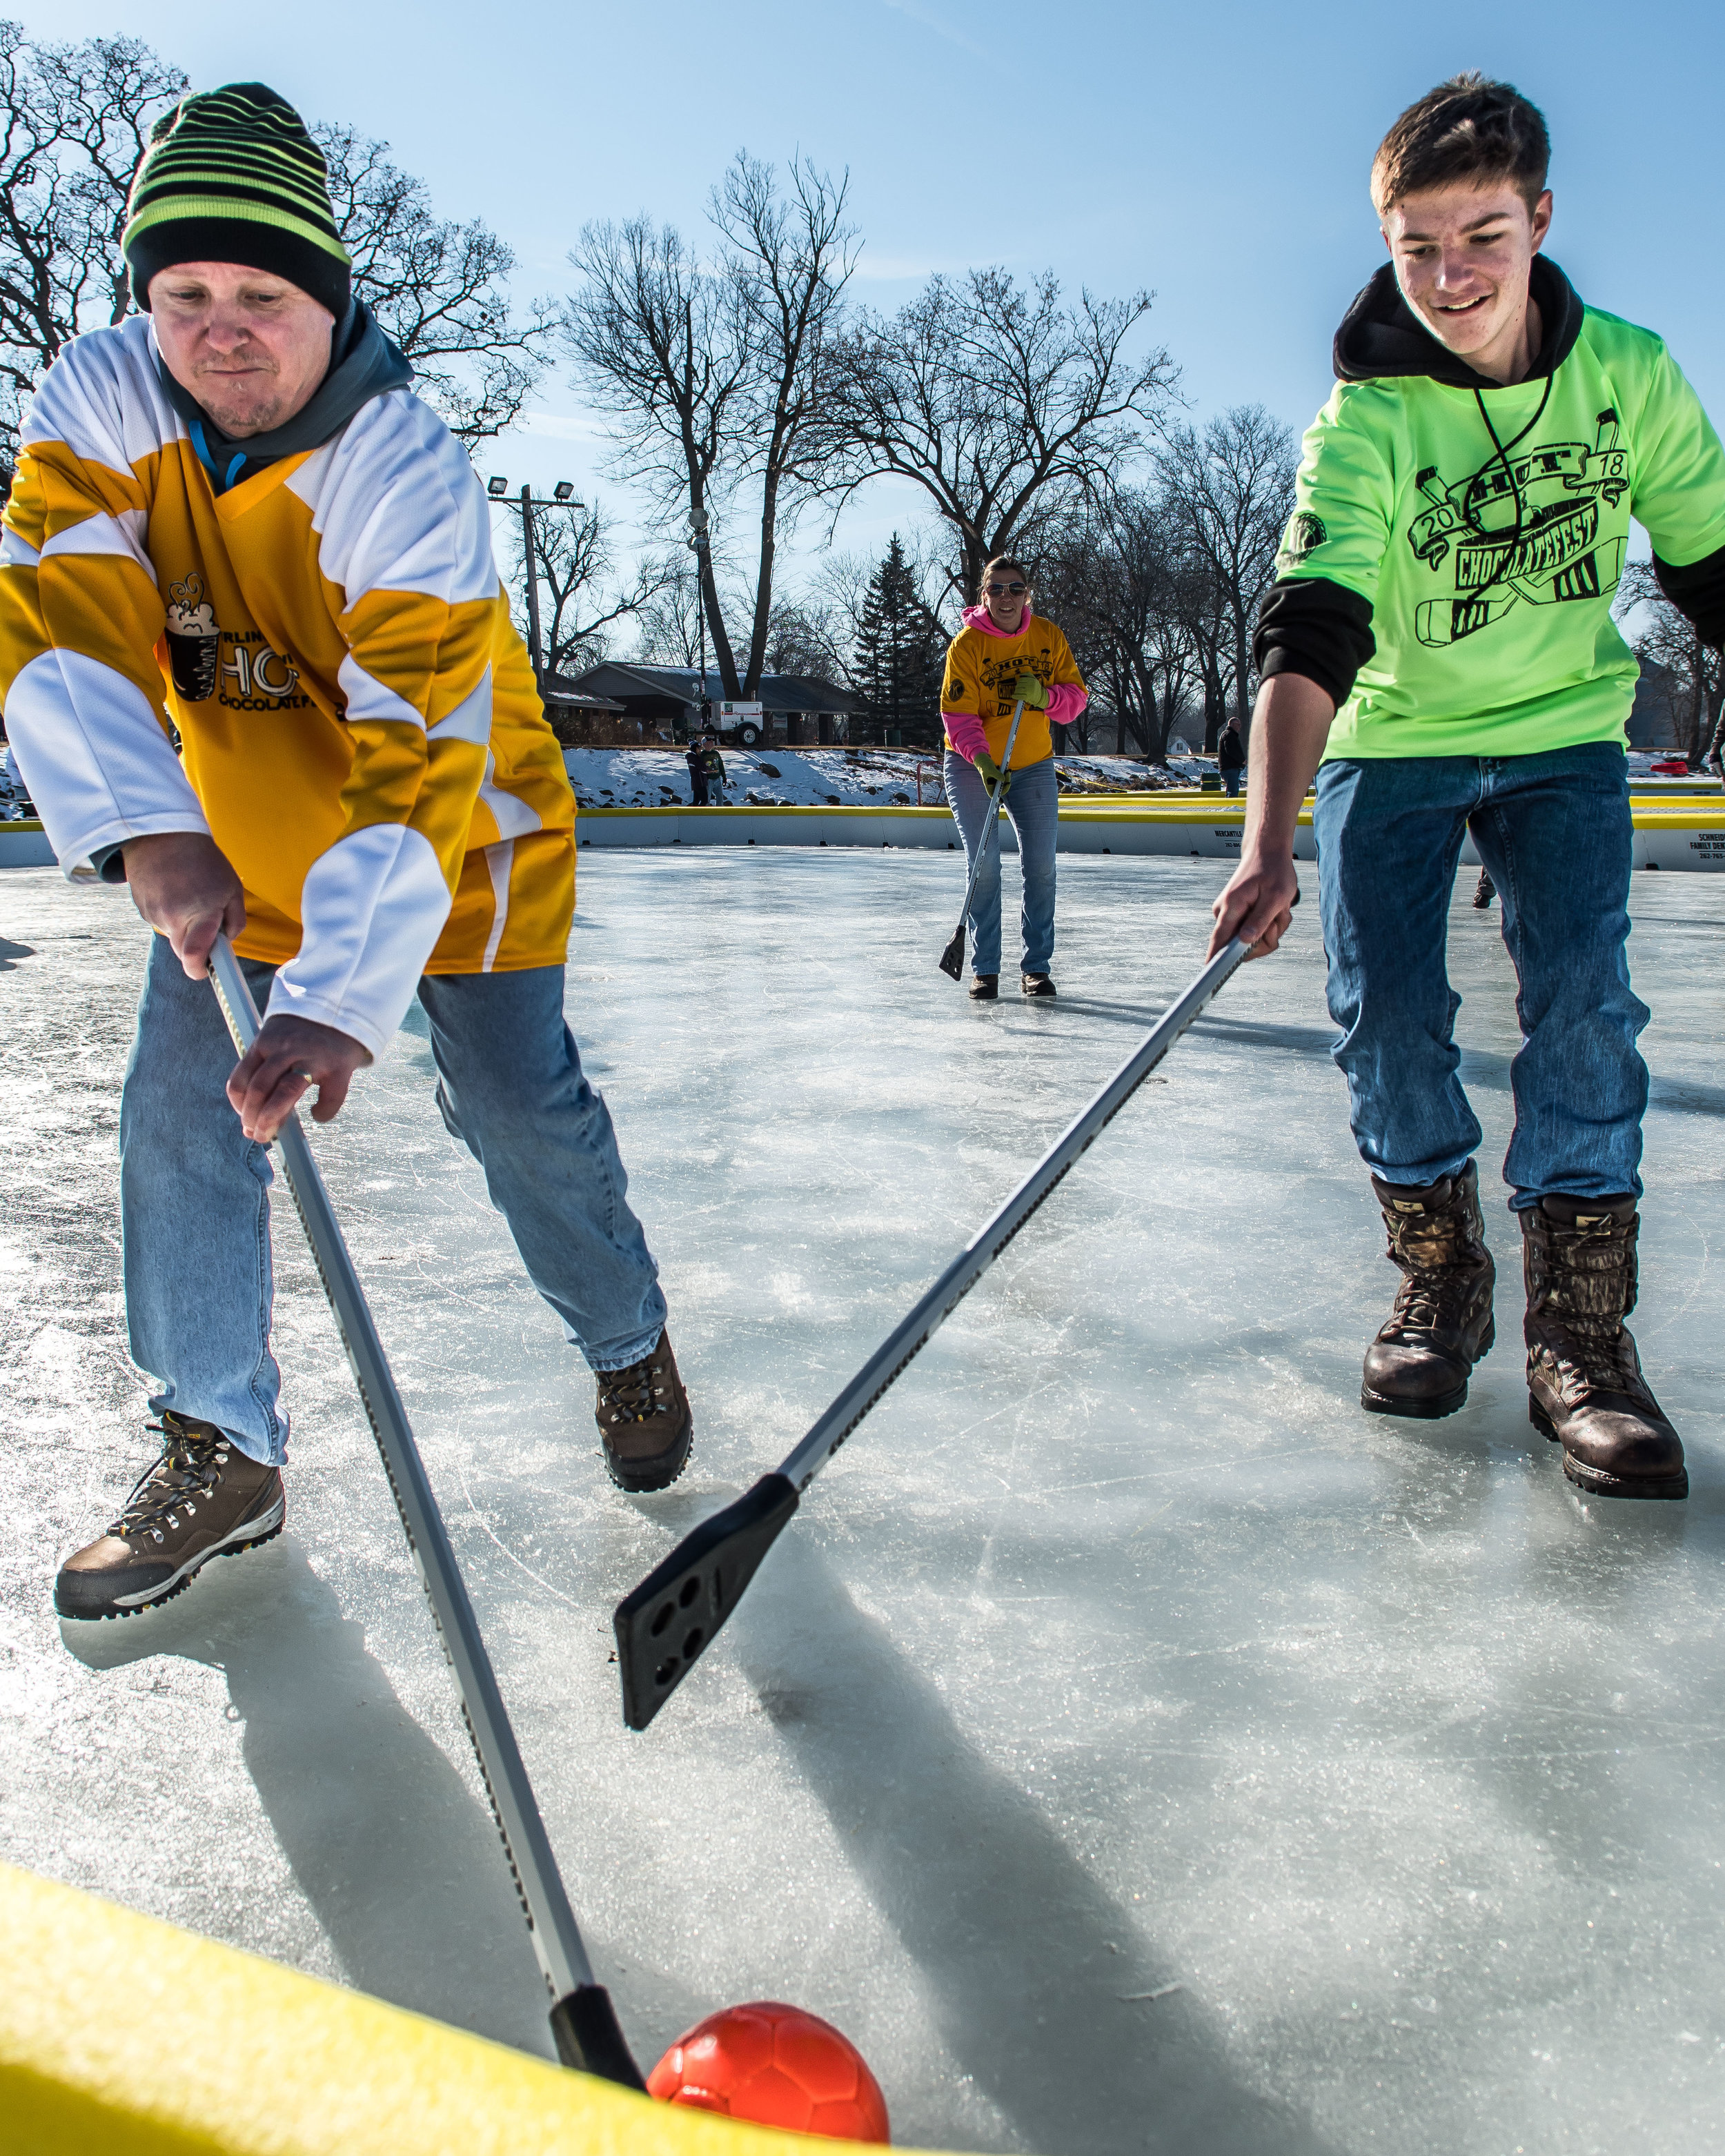 Jeff Van Lysal runs for the ball closely followed by Matthew Oliver, 14, during an adults versus kids game of Broom Ball on Echo Lake during Burlington's Hot Chocolatefest Saturday afternoon.